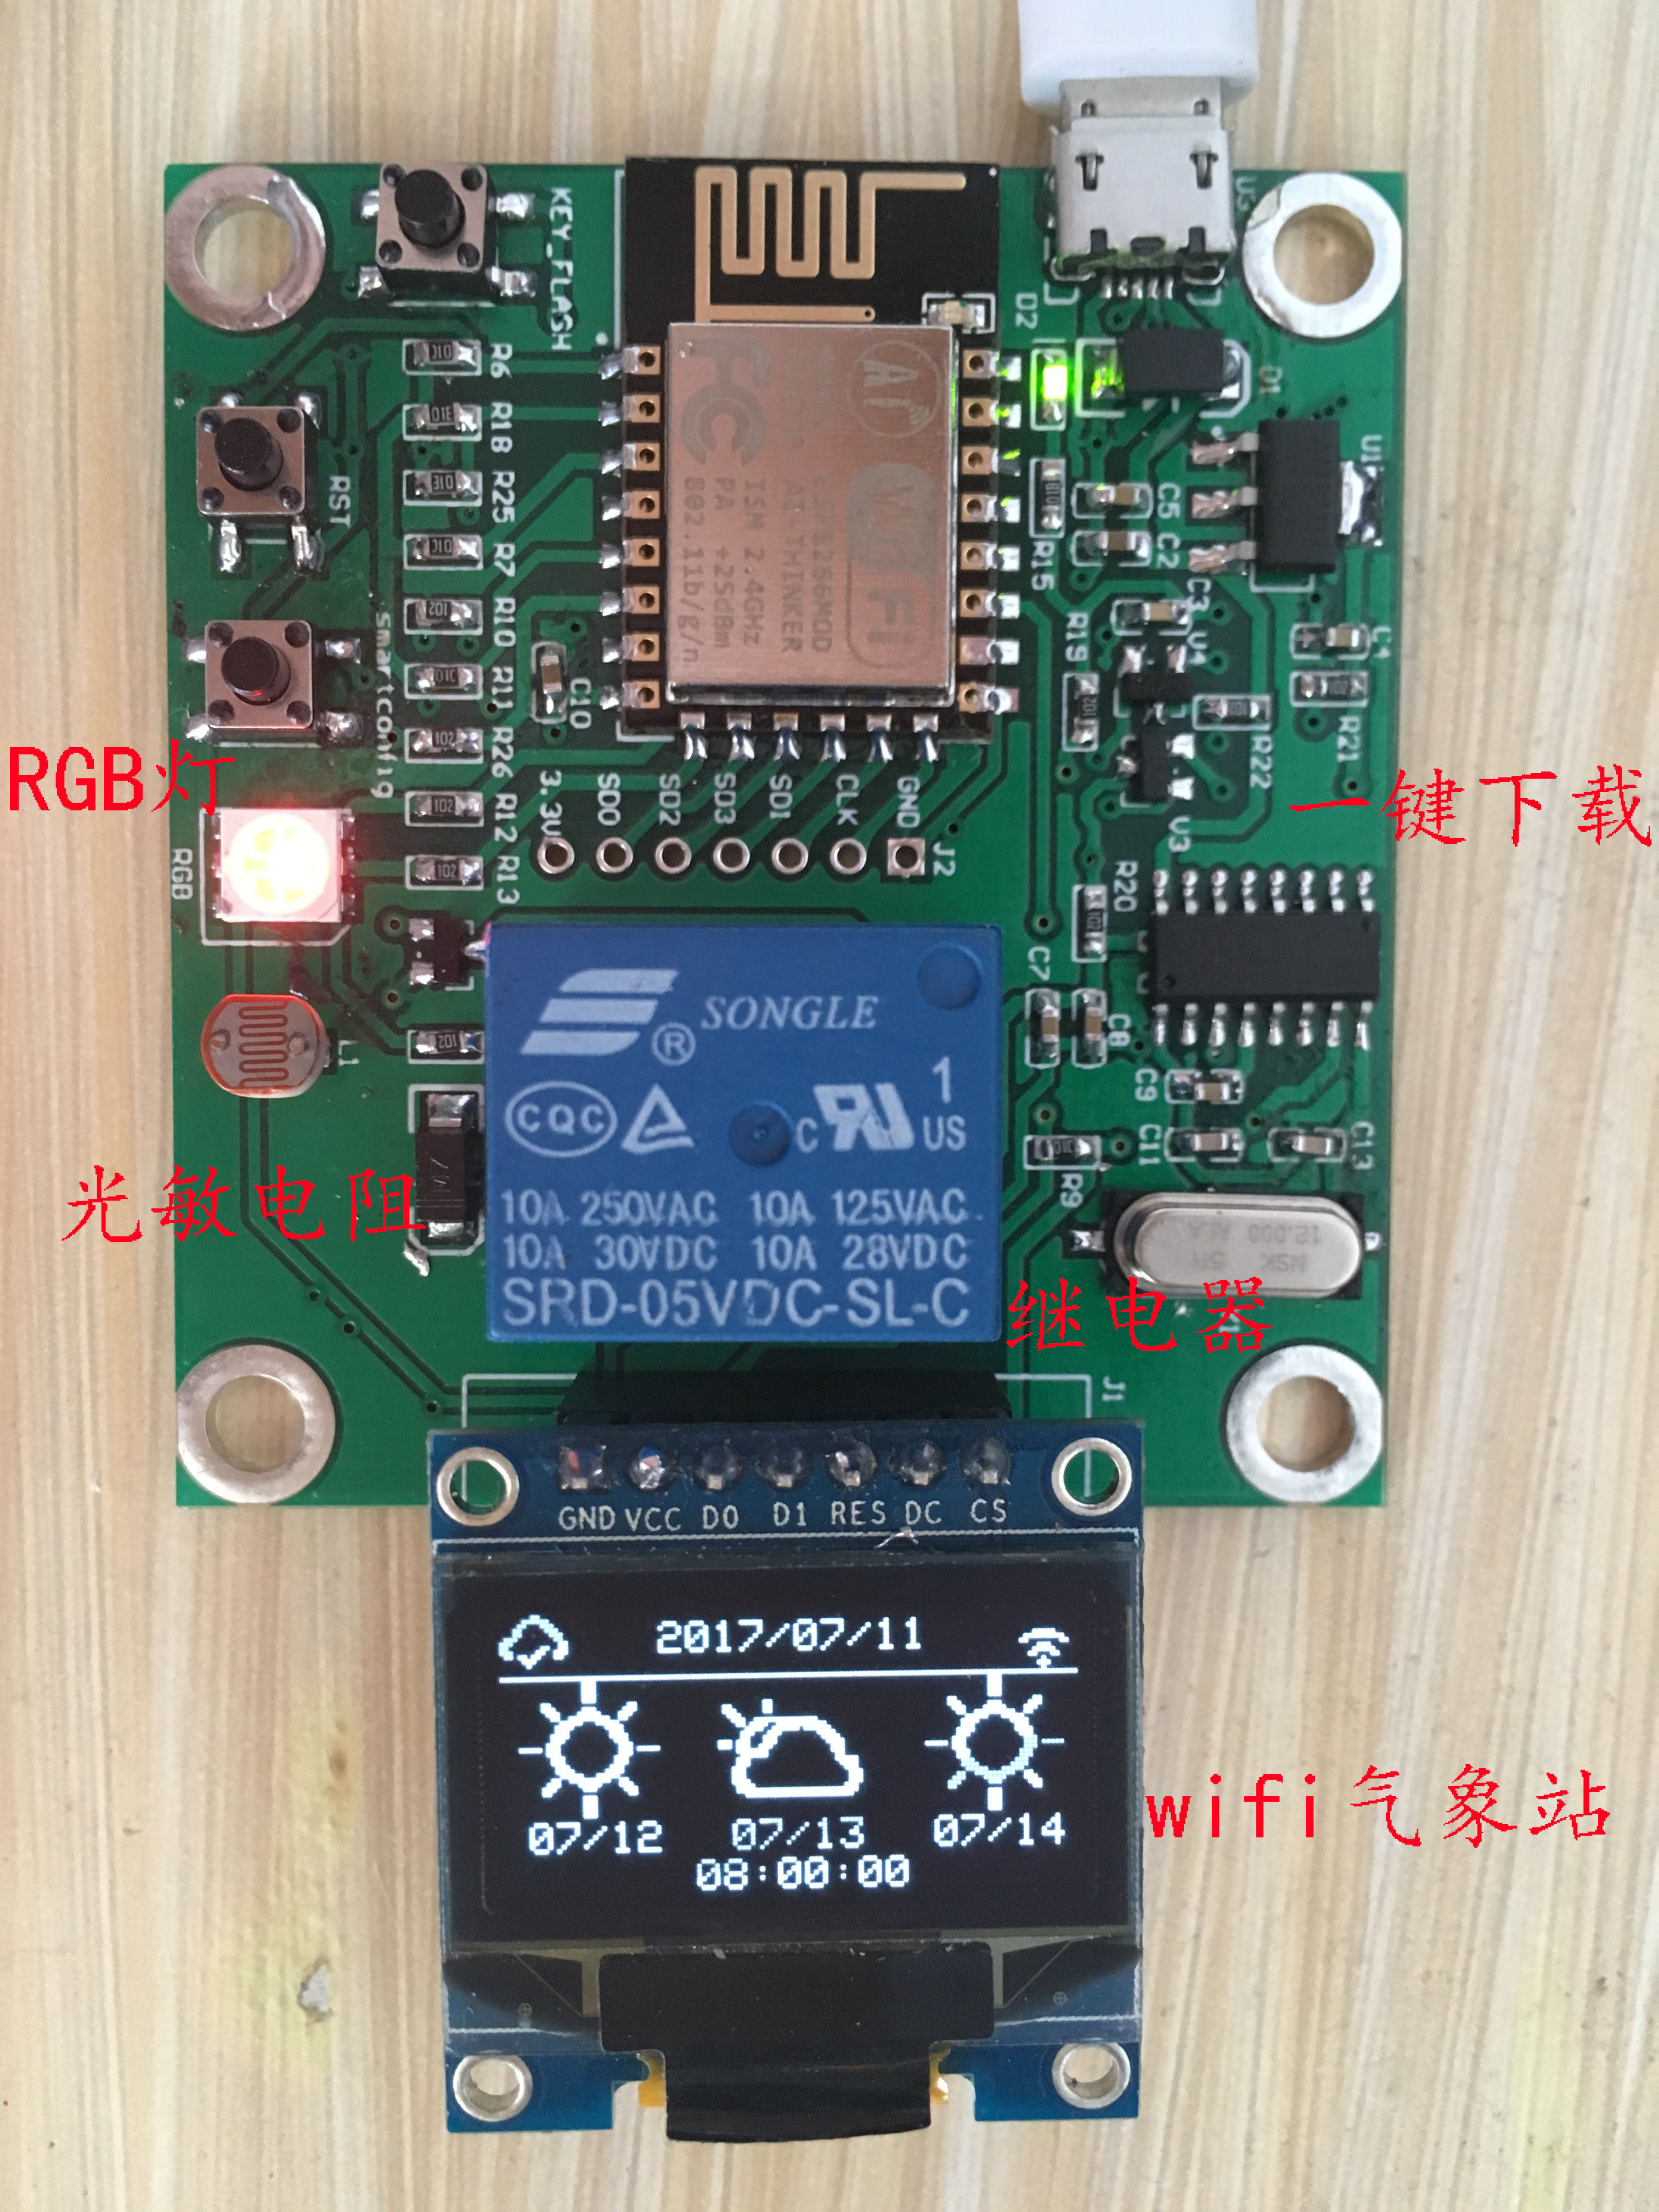 ESP8266-12 Internet of things smart home WIFI adruino development board, with OLED relay, with source code lua wifi nodemcu internet of things development board based on cp2102 esp8266